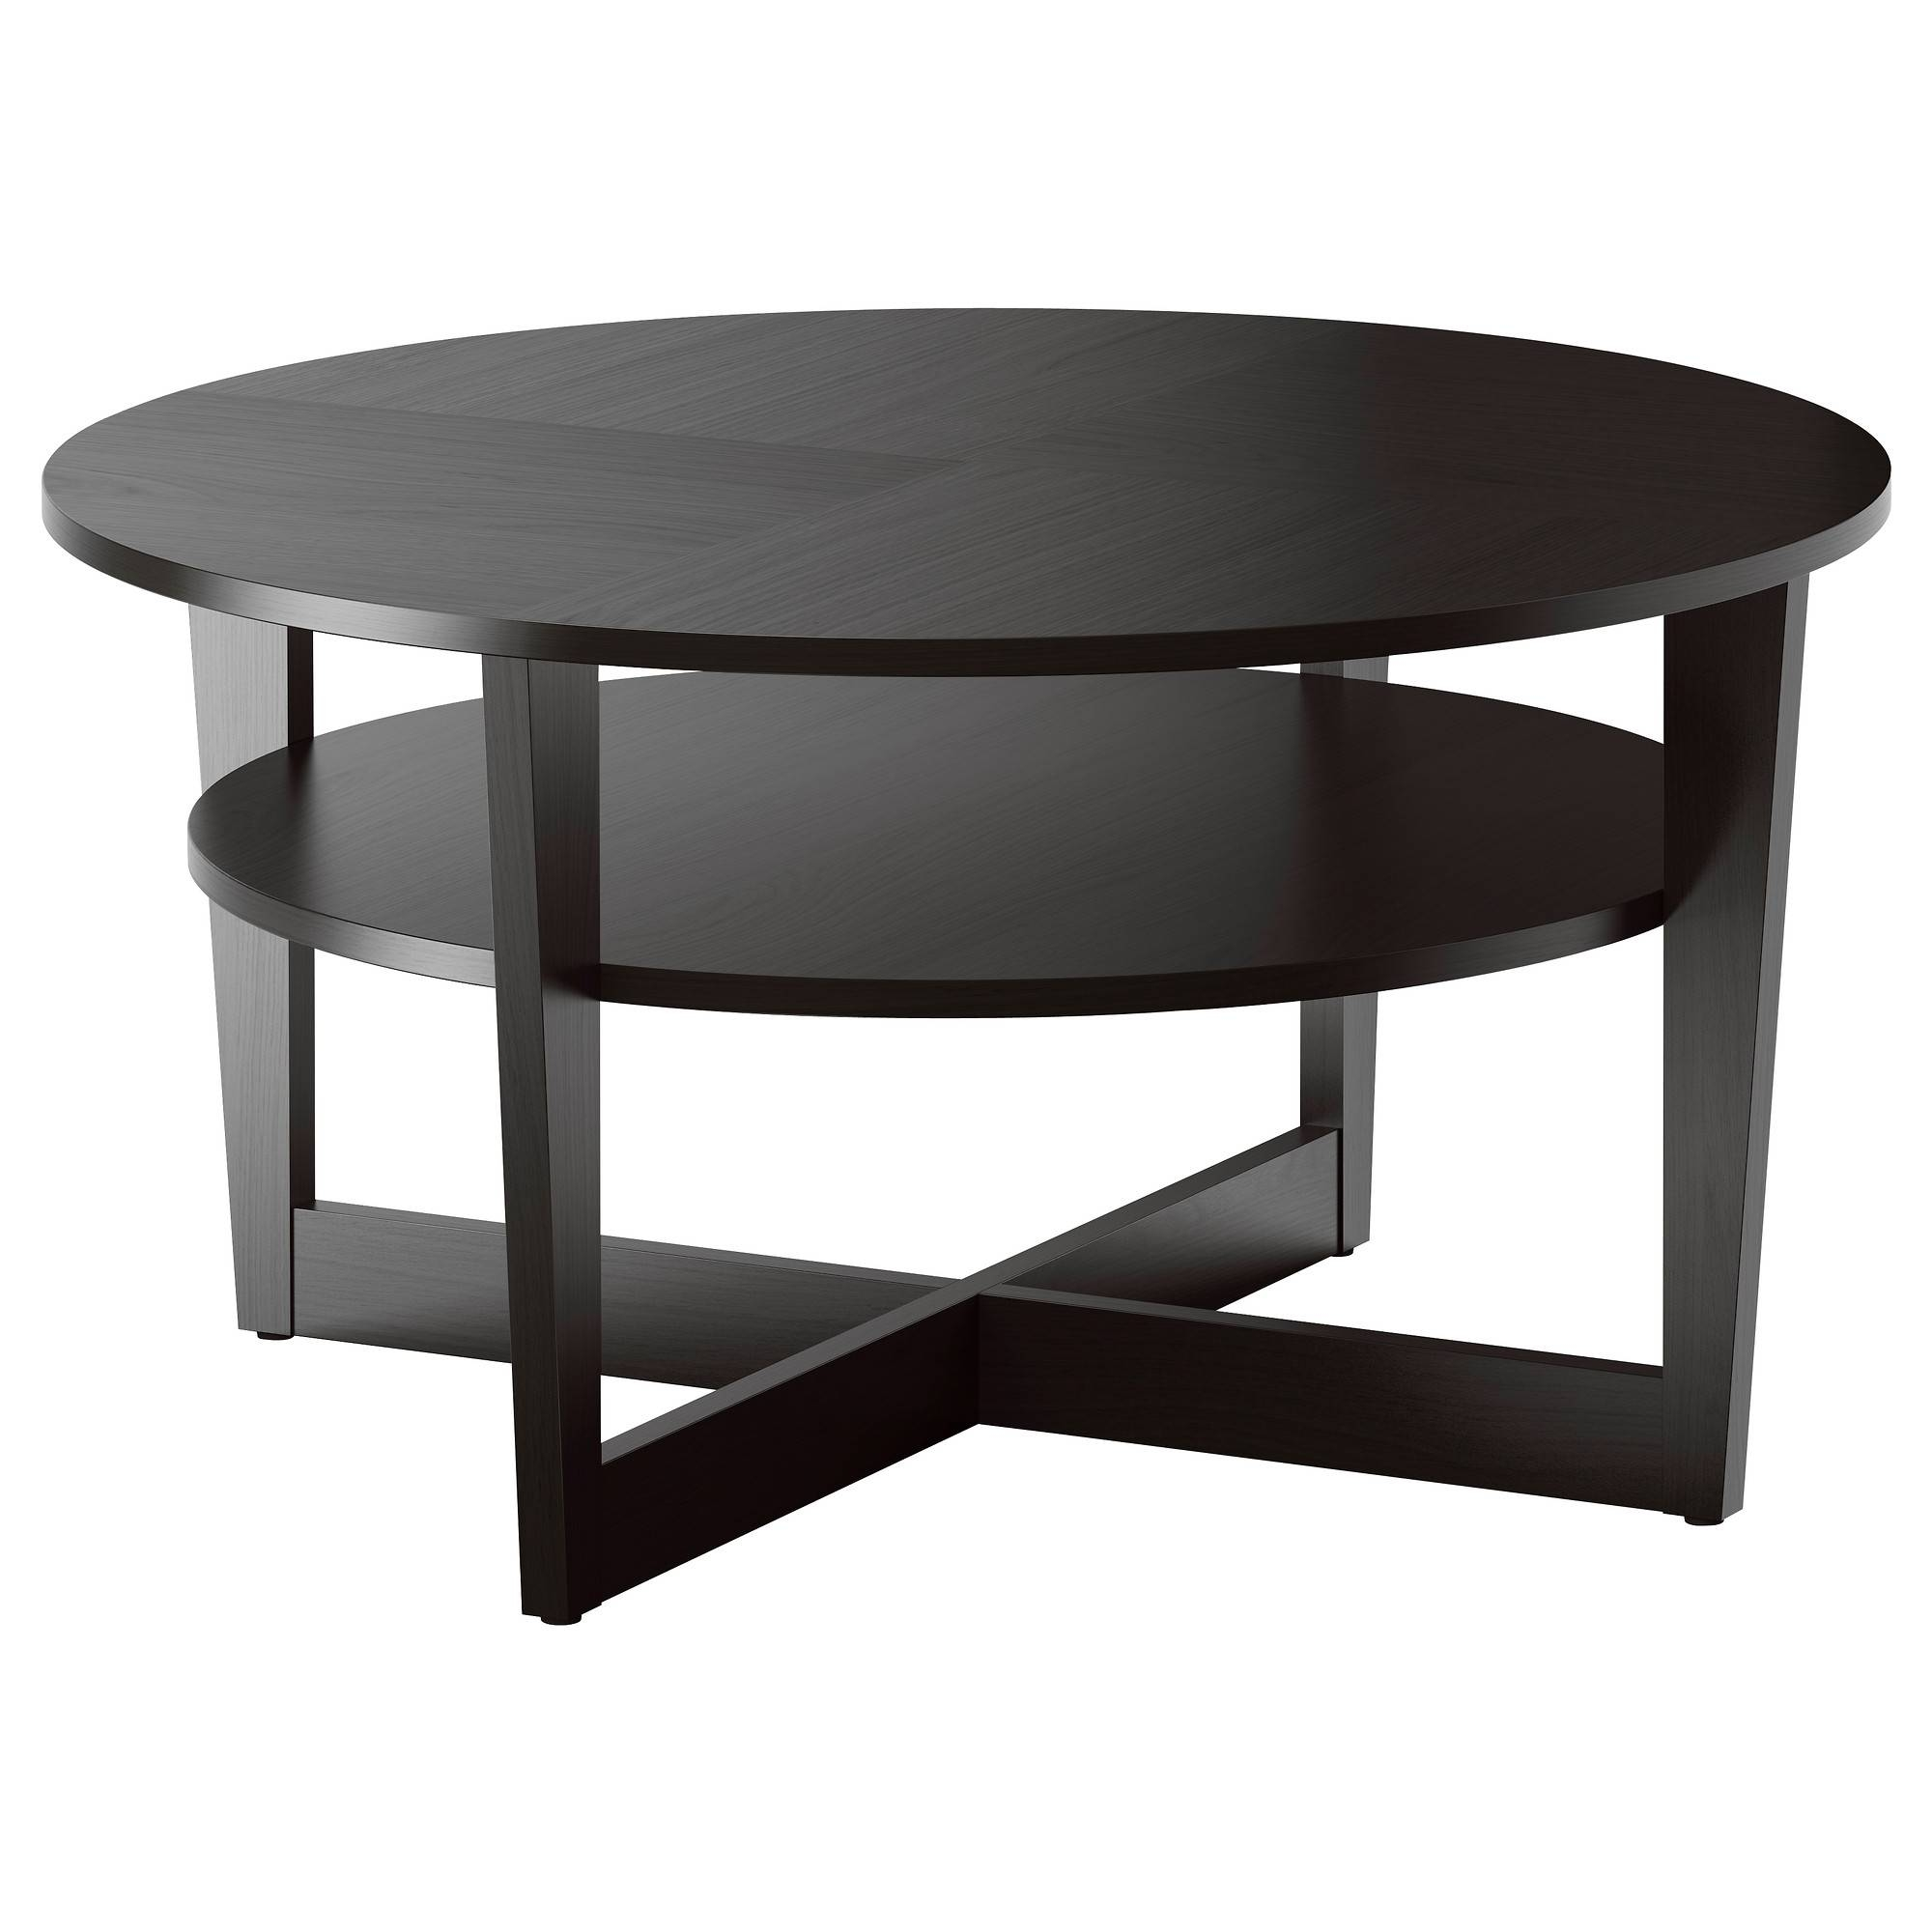 Vejmon Coffee Table - Black-Brown - Ikea inside Round Coffee Tables (Image 29 of 30)